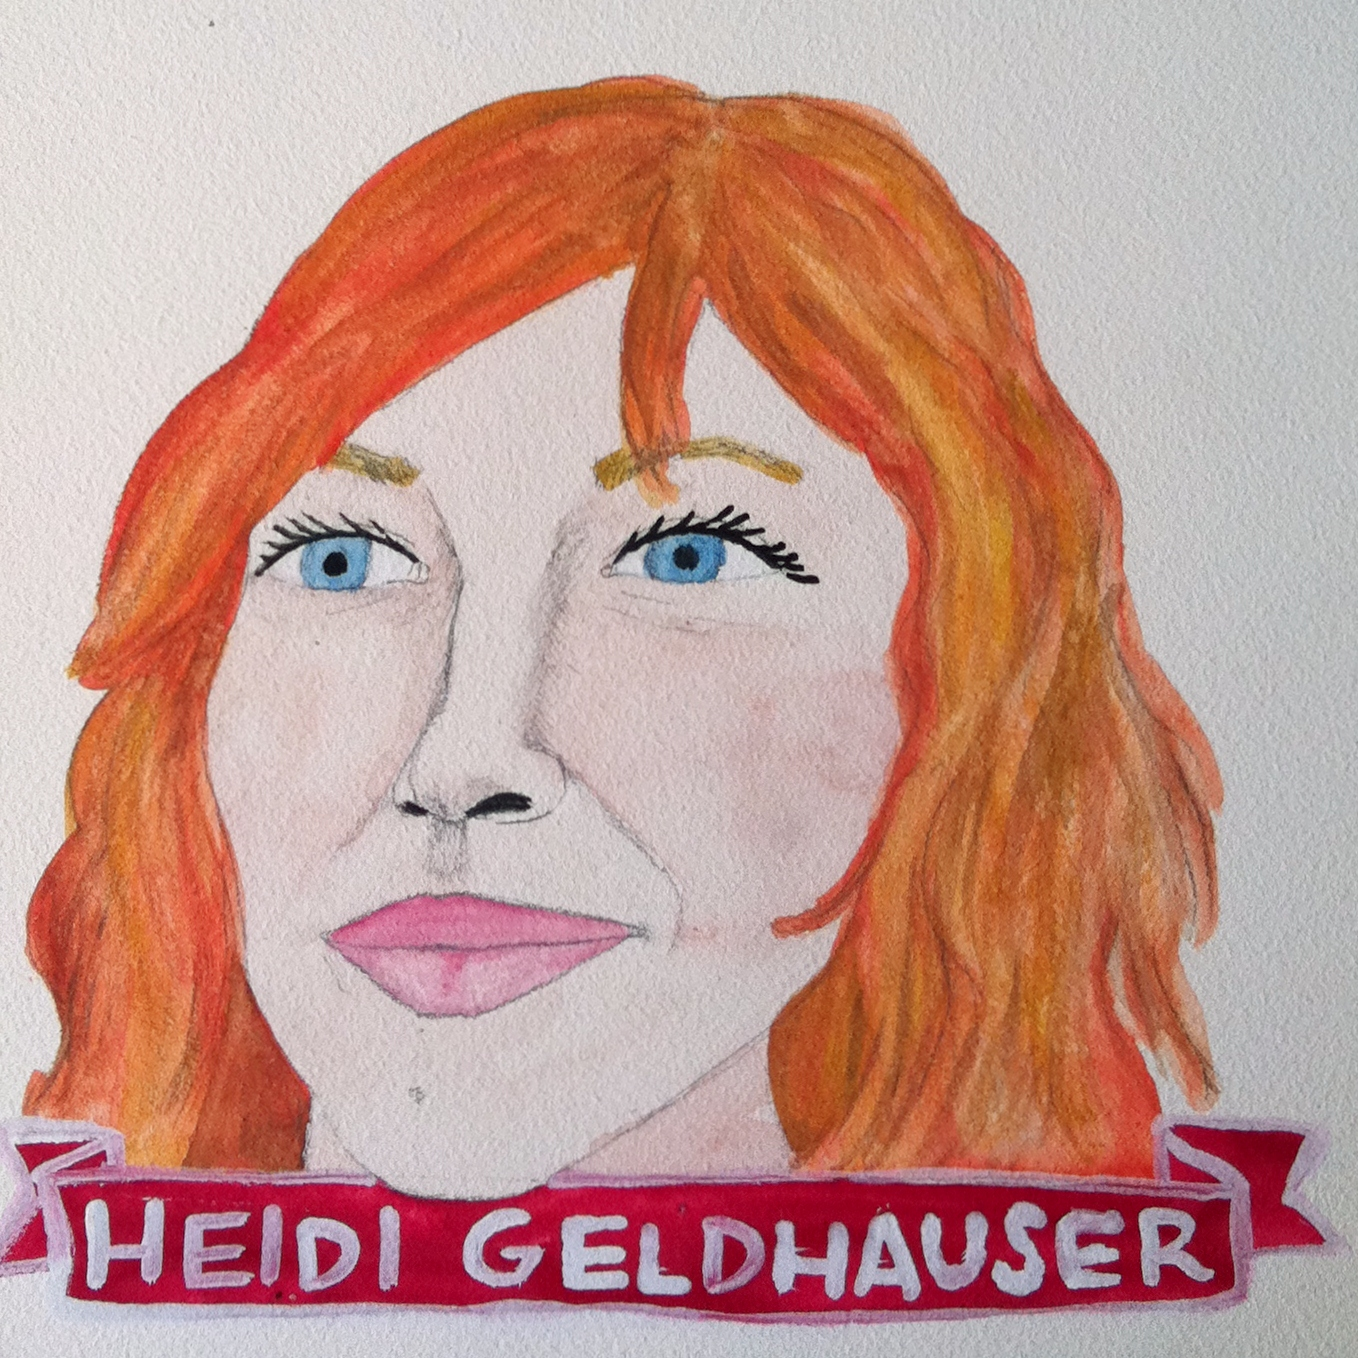 Talent Loves Company at Barbara Archer Gallery: 365 portraits by Lydia Walls - Heidi Geldhauser